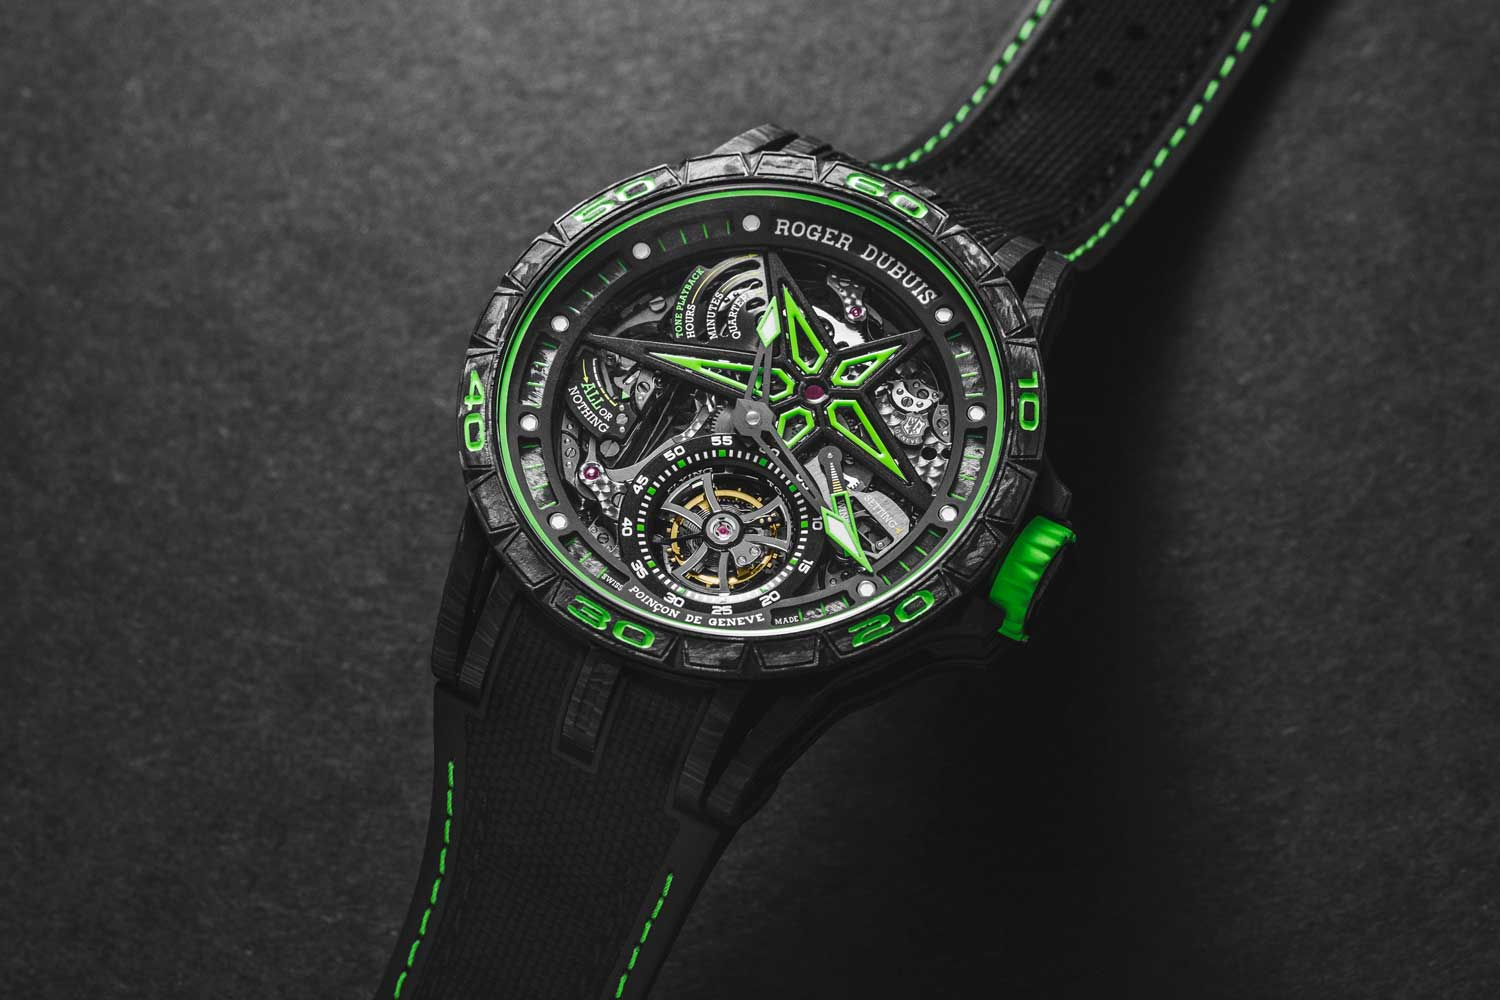 Roger Dubuis Excalibur Spider Unique Series Minute Repeater (Image © Revolution)